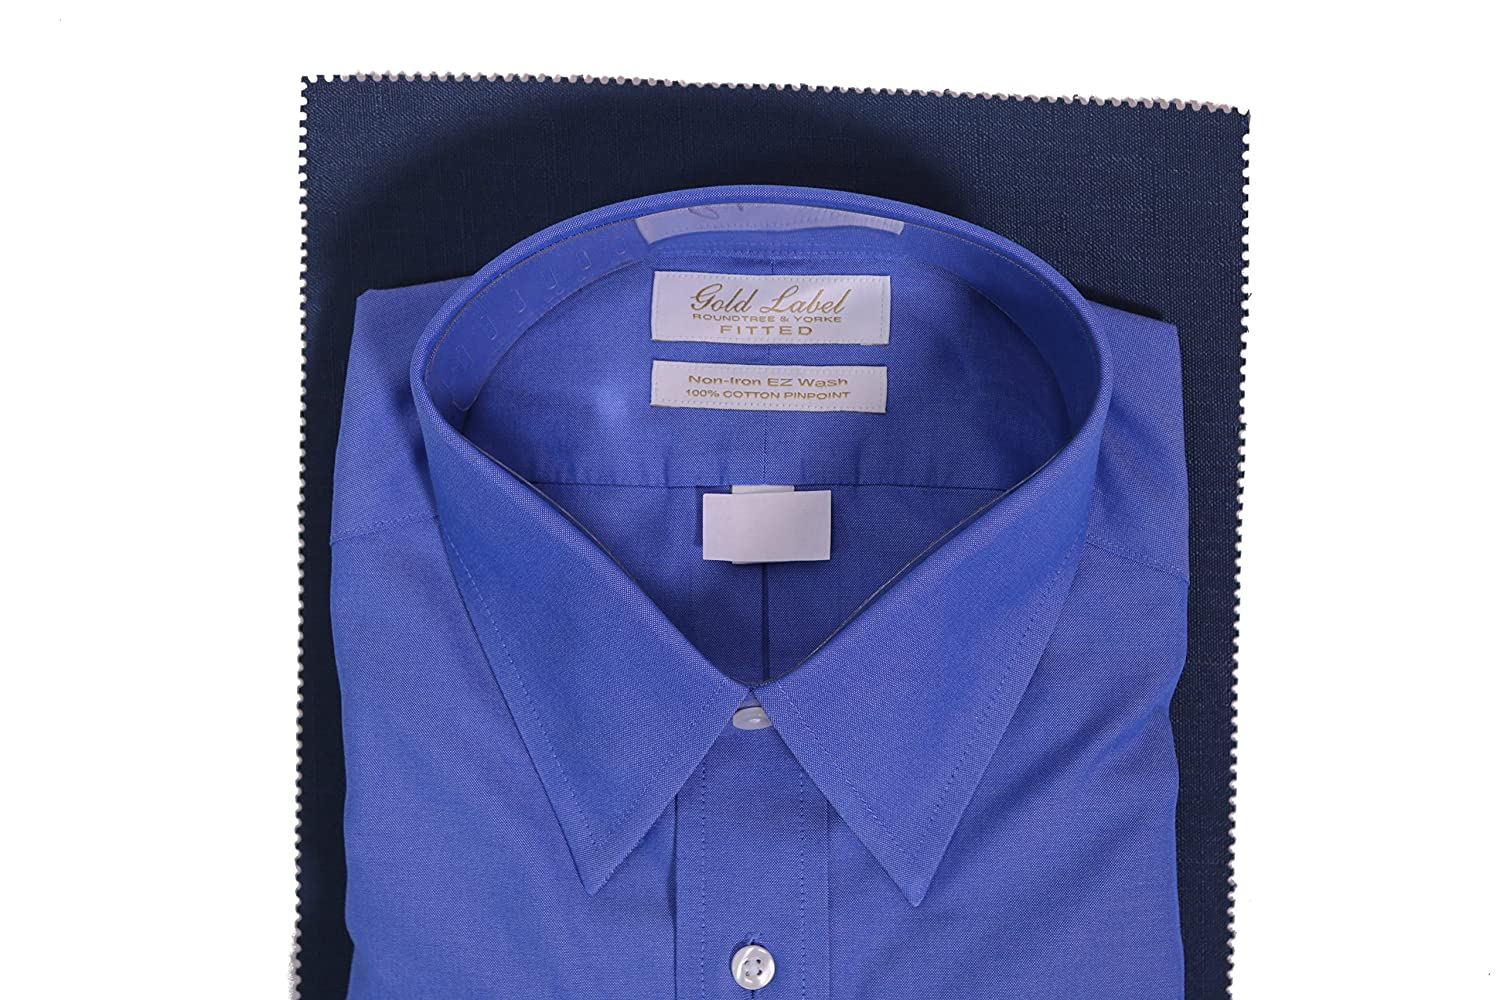 Gold Label Roundtree Yorke Solid Non Iron Fitted Classic Fit Point